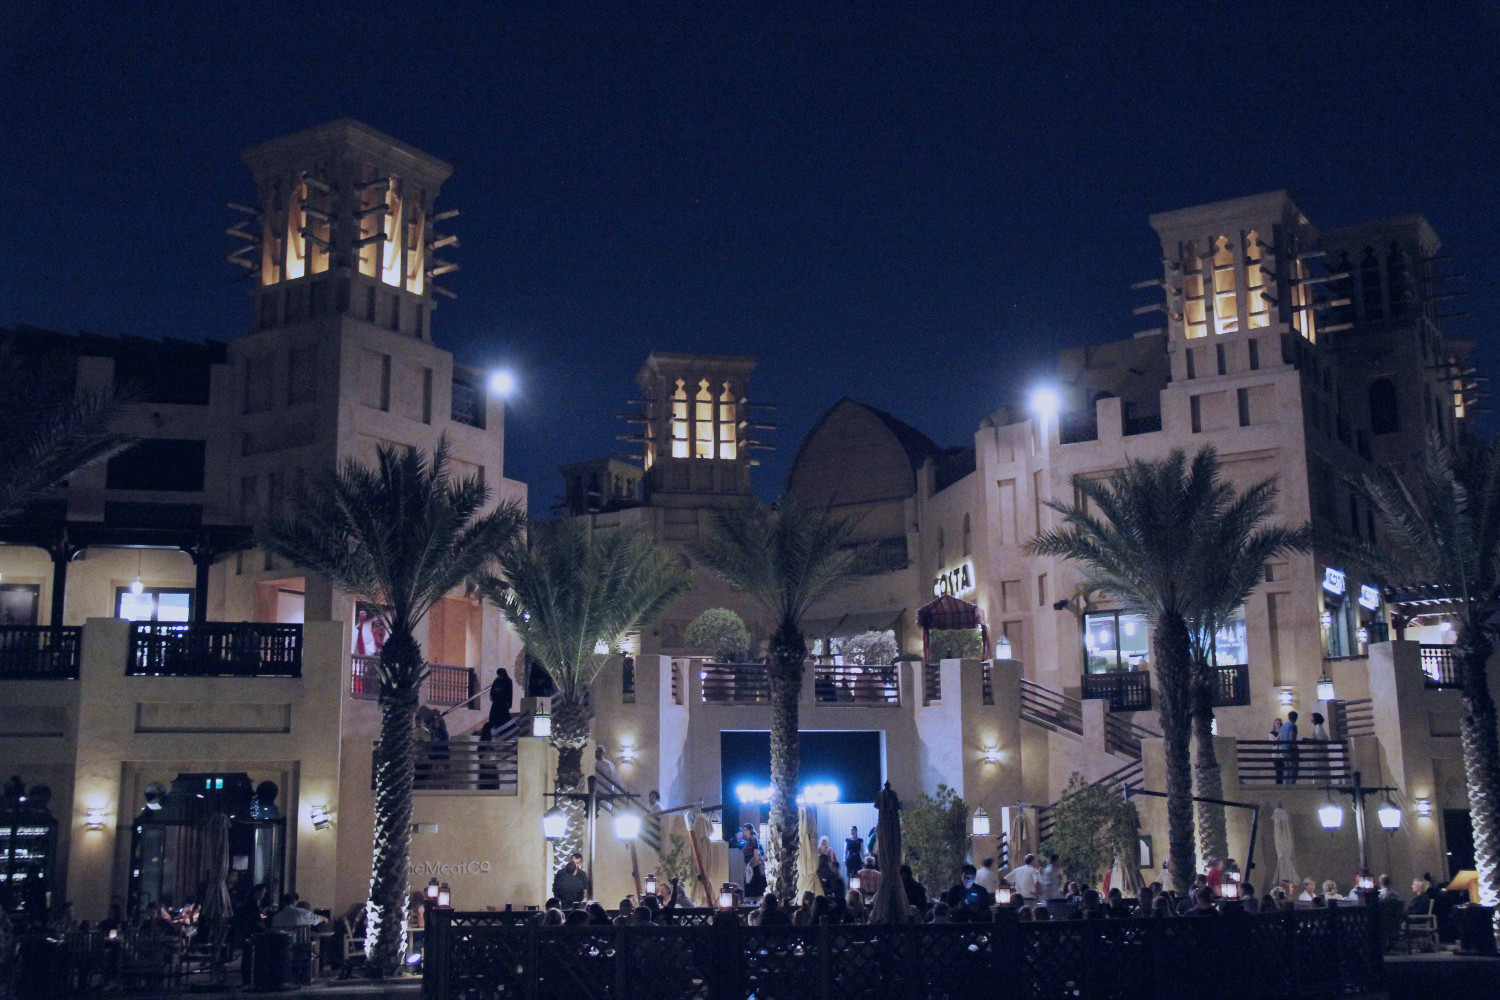 Madinat Jumeirah is one of the famous places to visit in Dubai. Discover the best things to do in Dubai UAE, plus hotels in Dubai, where to eat in Dubai and Dubai travle tips from a local from this article.